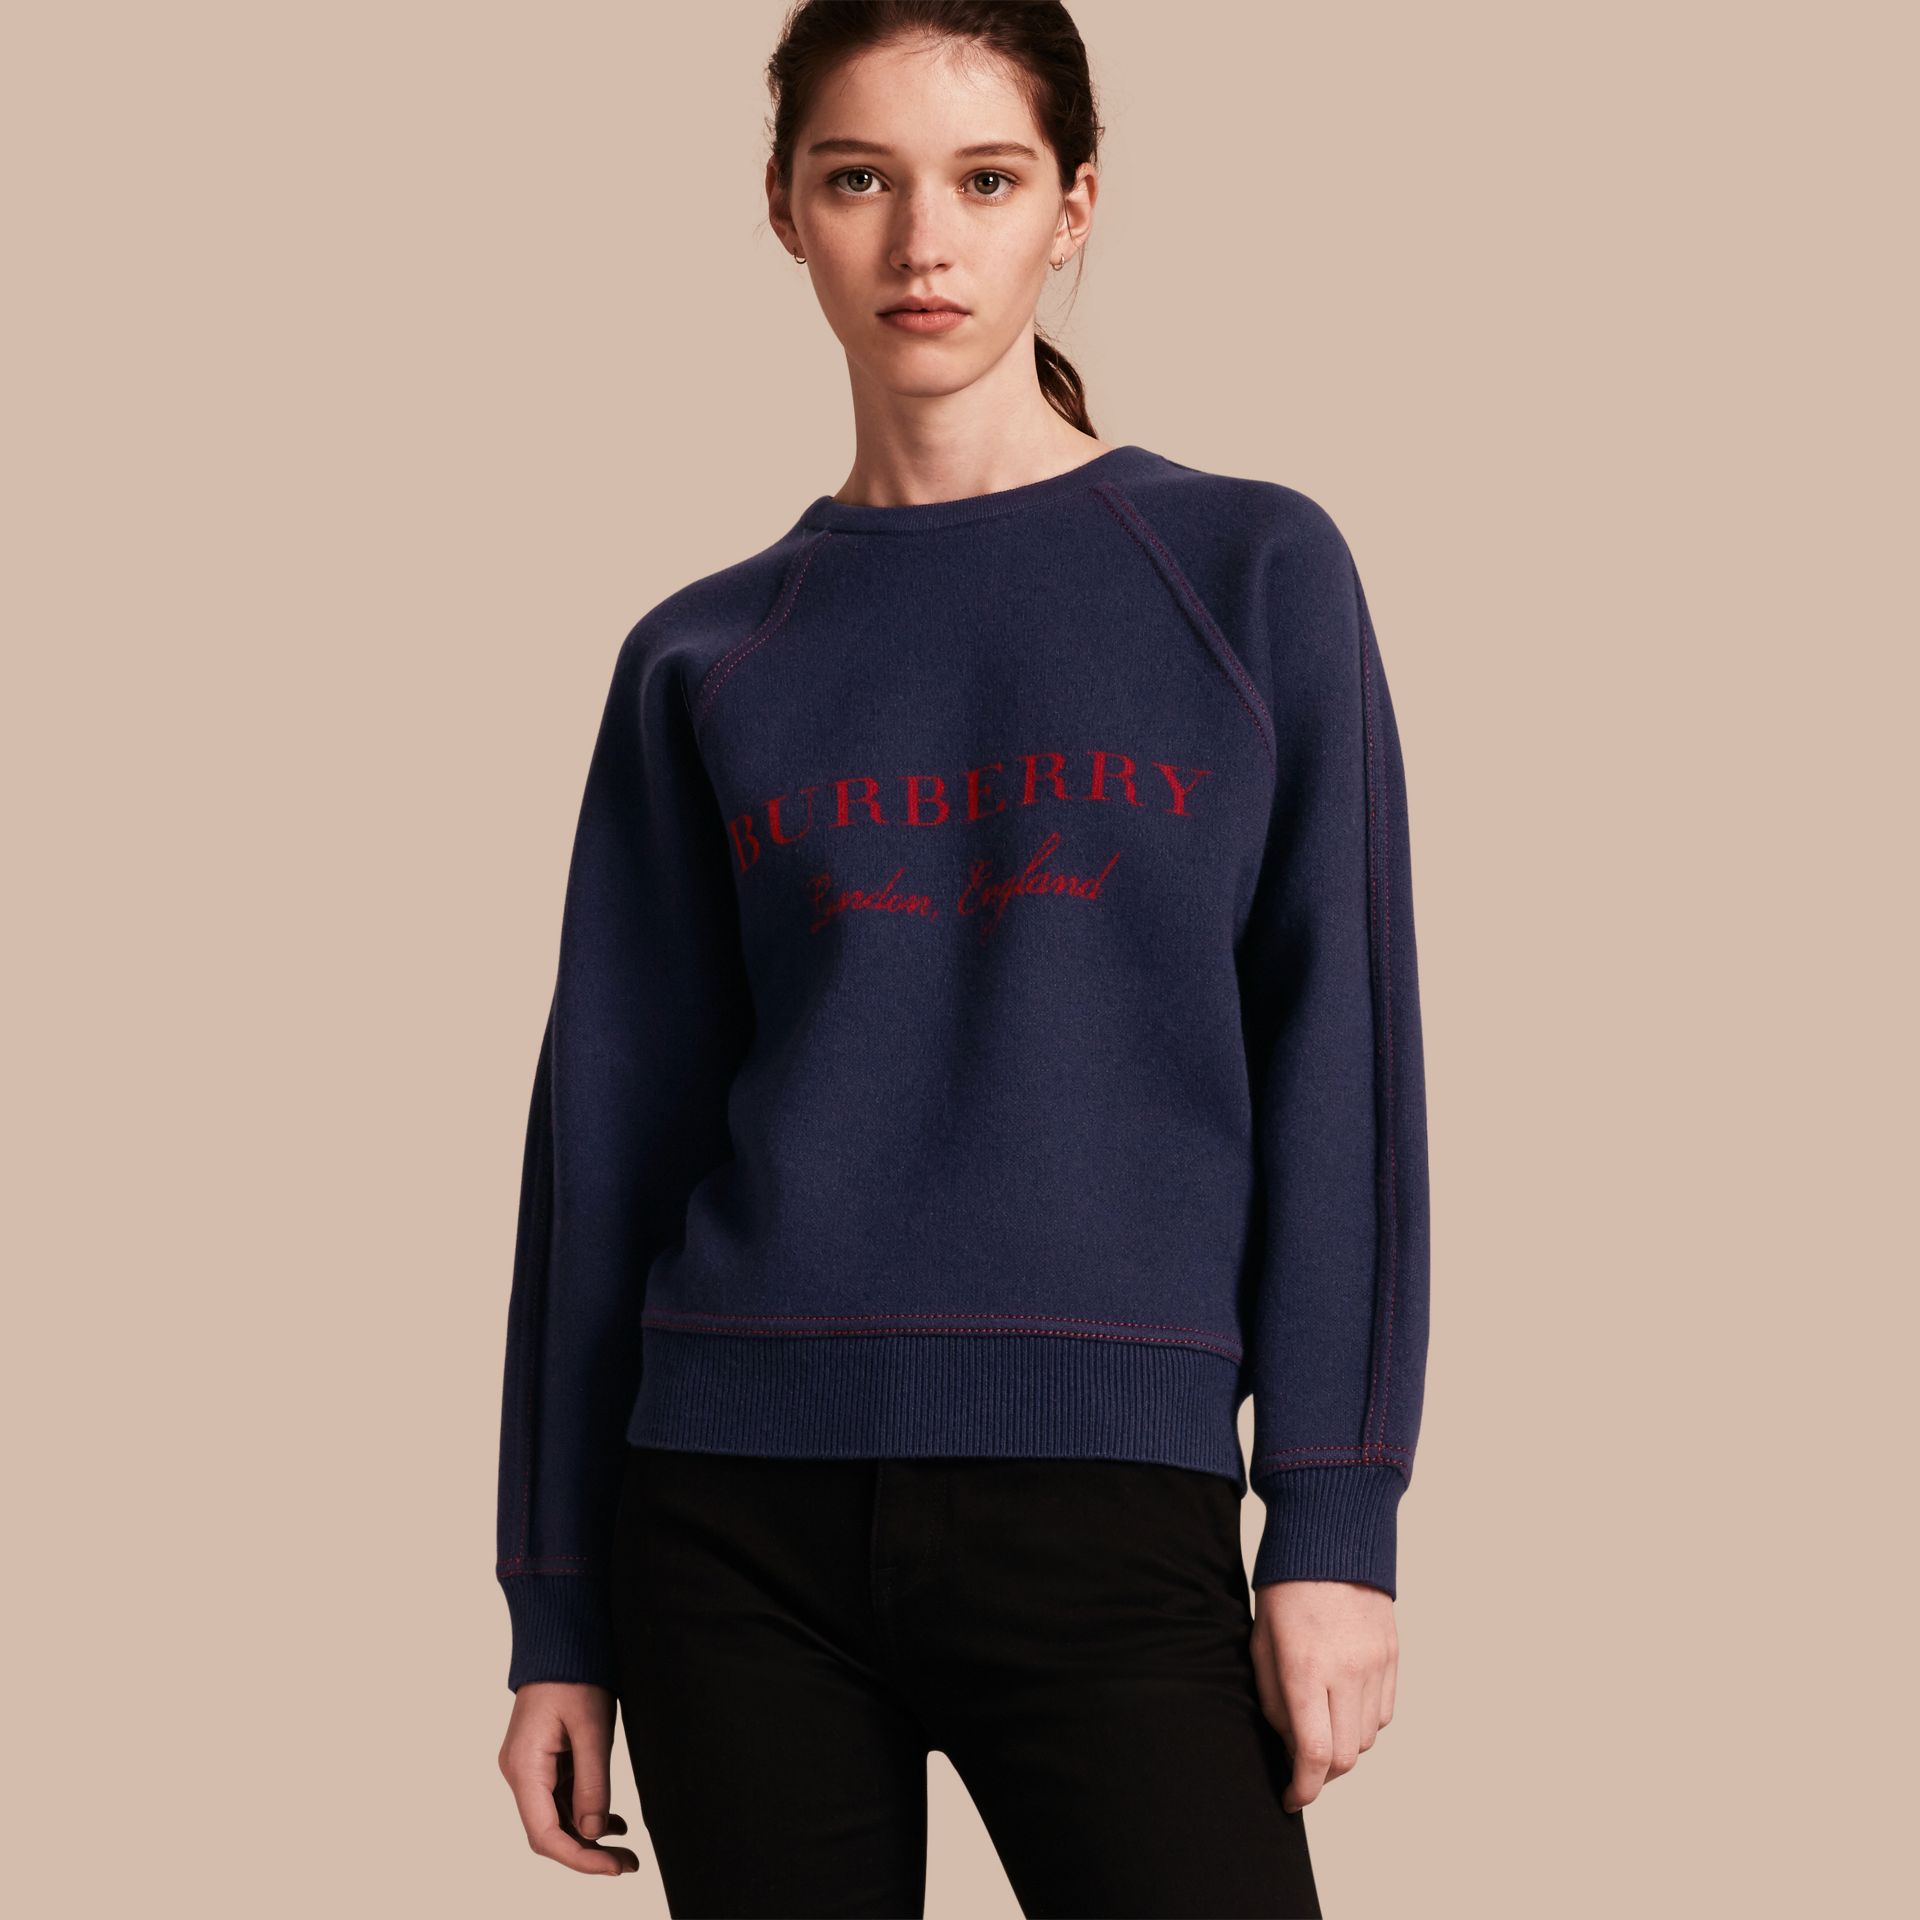 Topstitch Detail Wool Cashmere Blend Sweater in Navy - Women | Burberry United States - gallery image 1